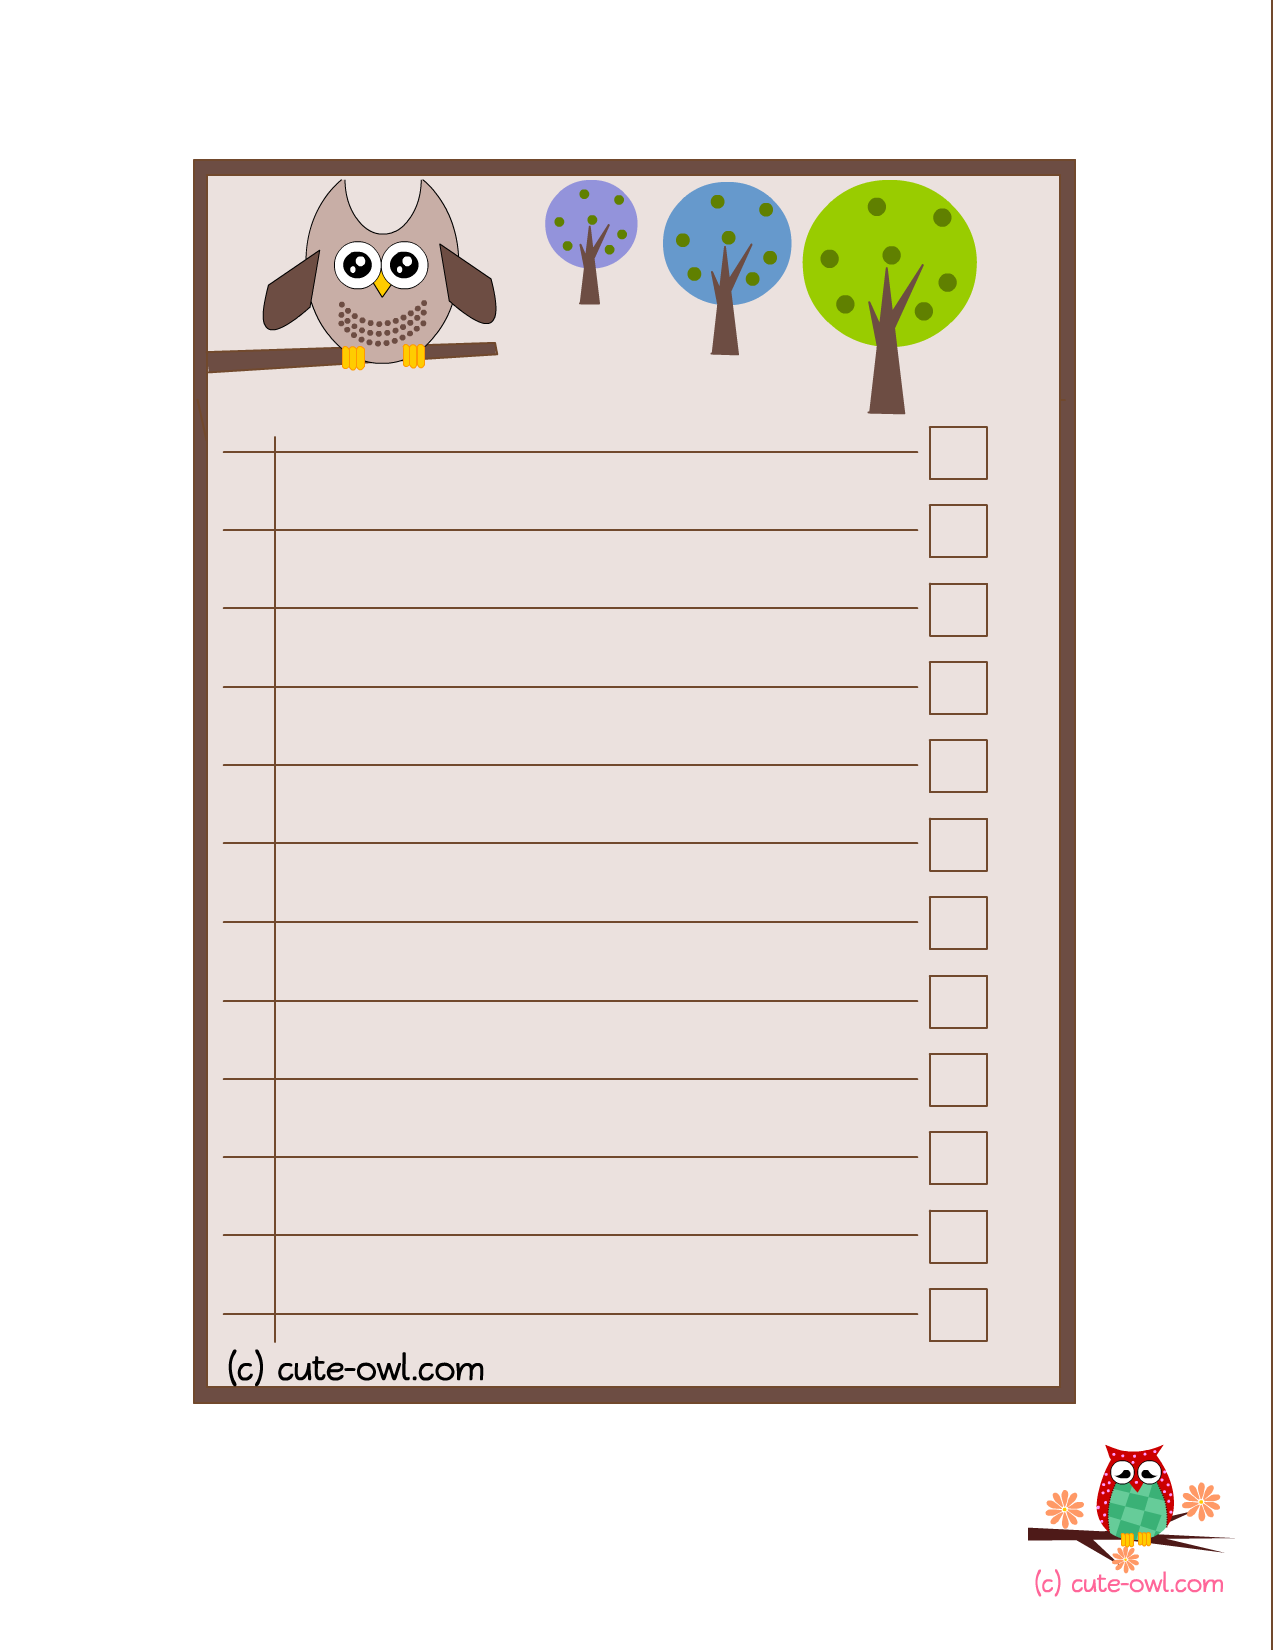 Bien-aimé 4 Cute Owl to do lists | For the Love of Owls | Pinterest | Owl  HX77